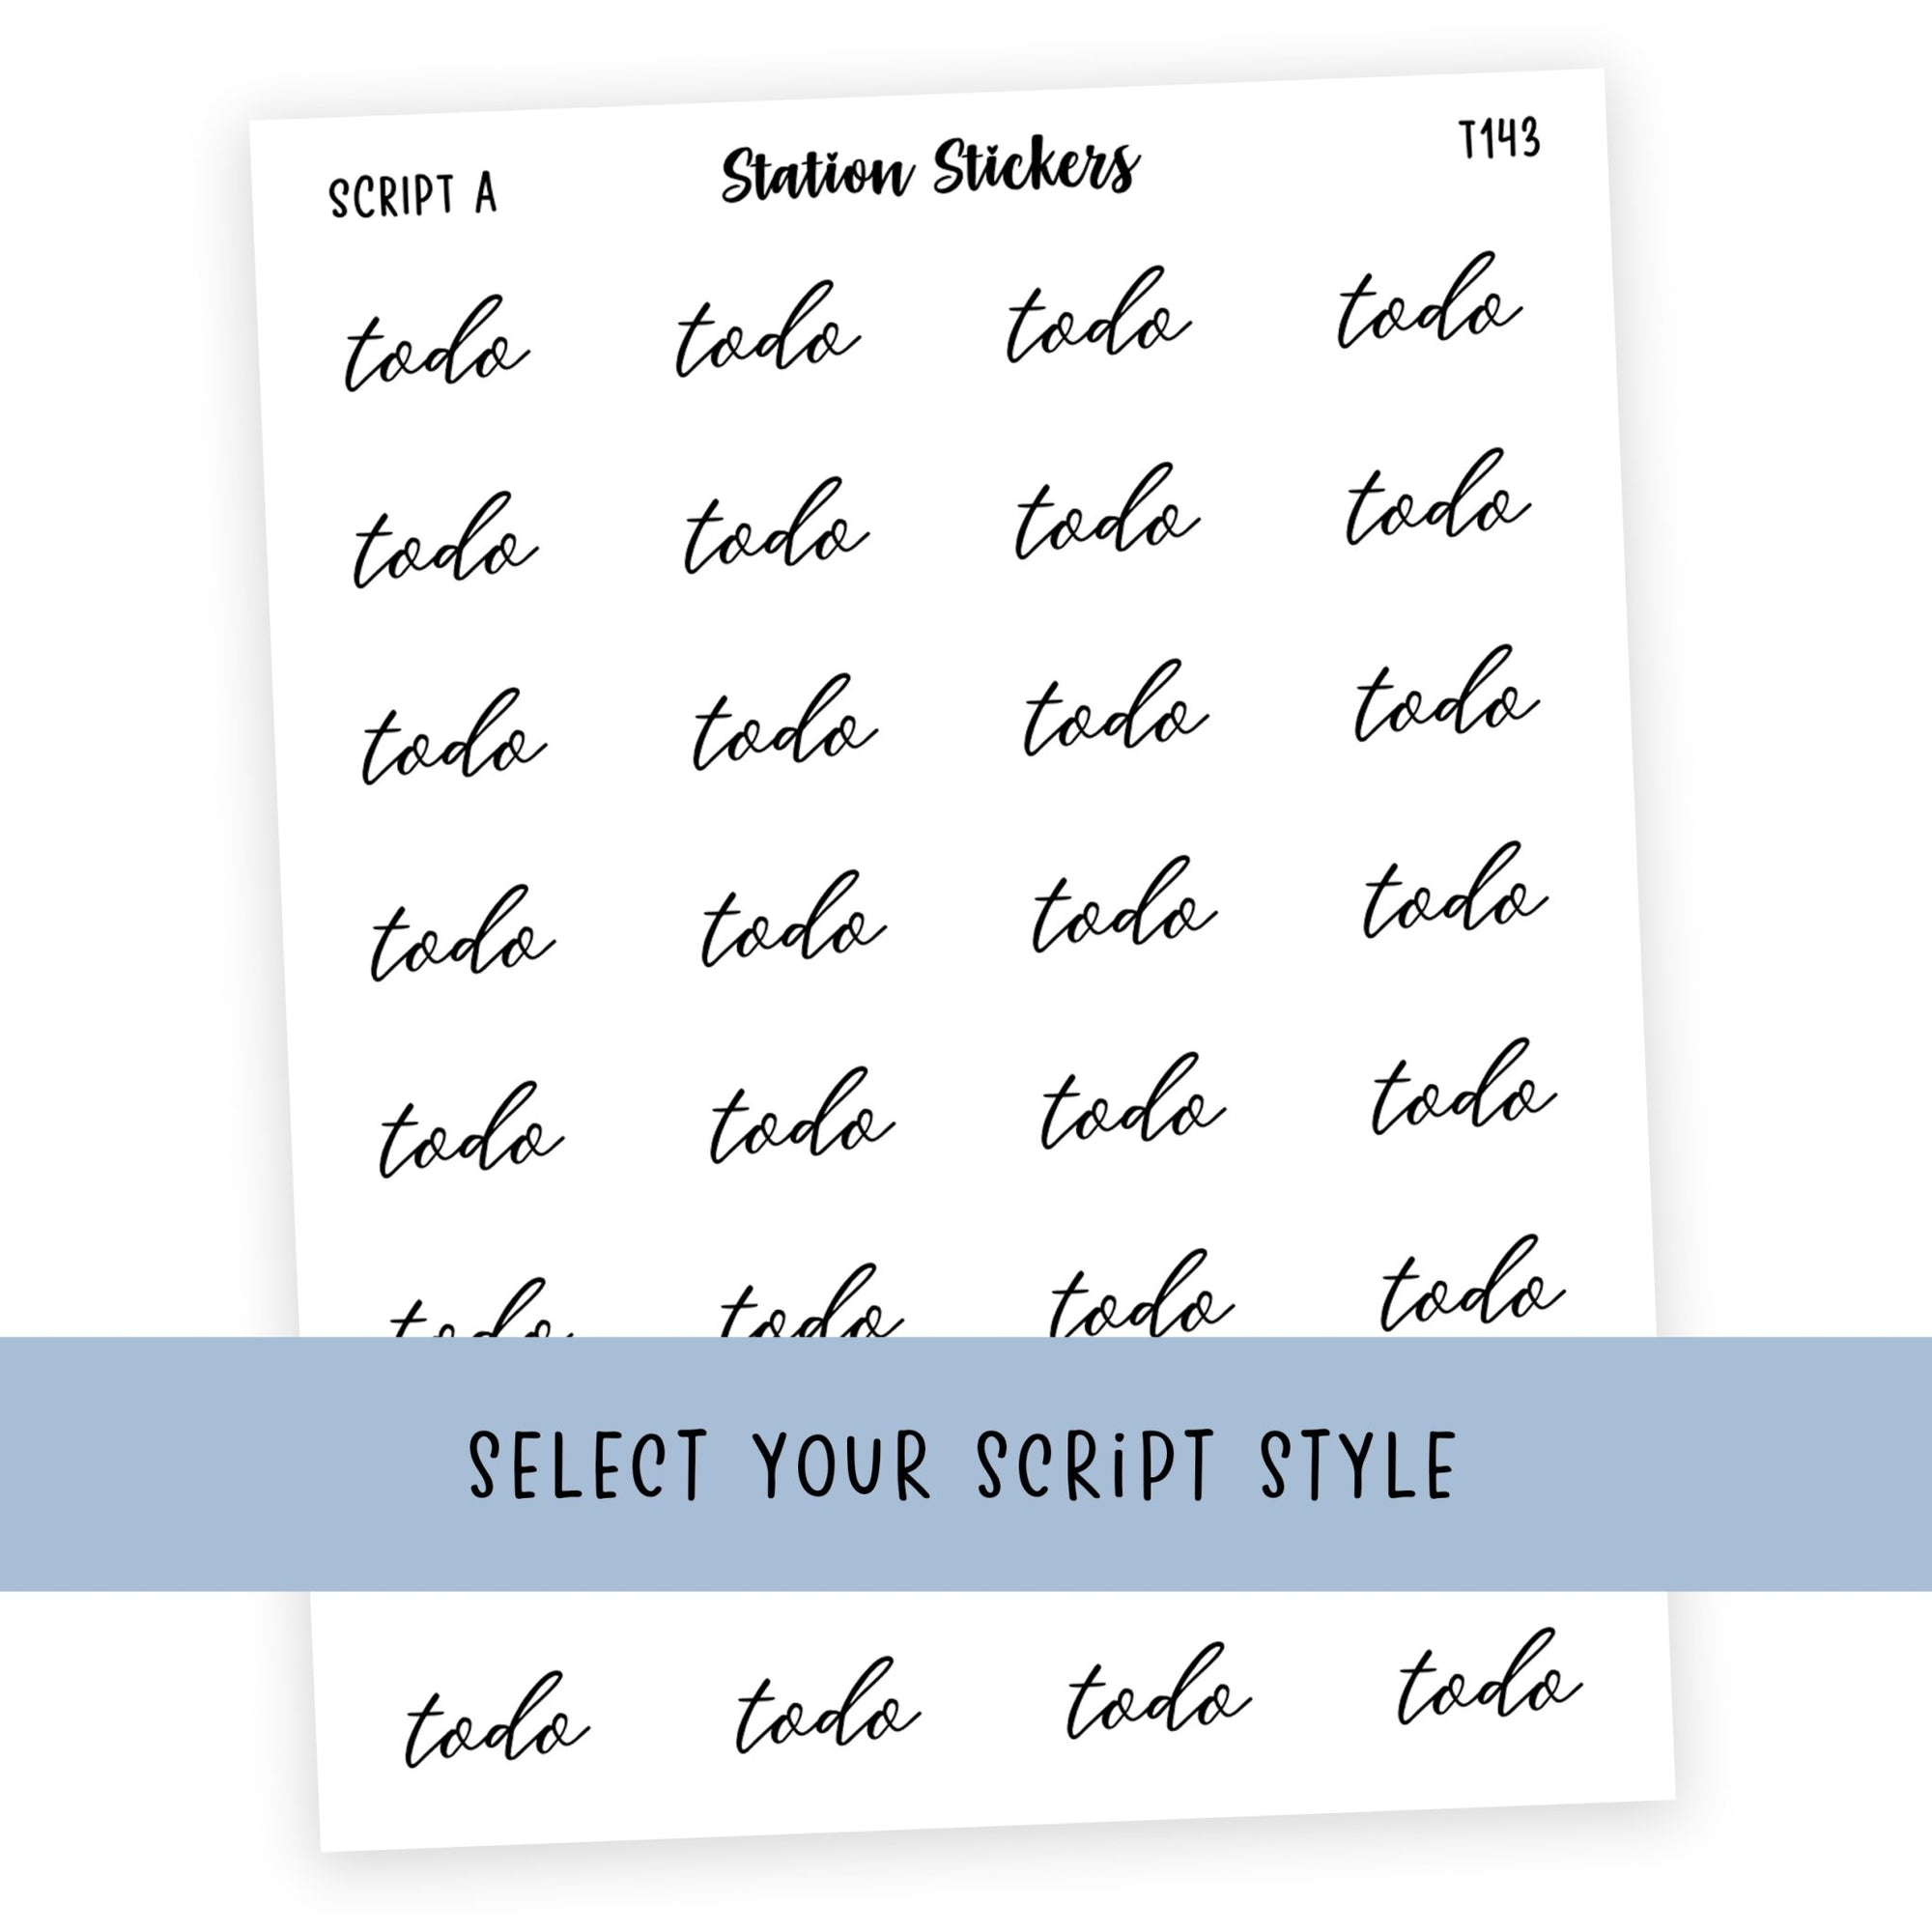 TO DO • SCRIPTS - Station Stickers